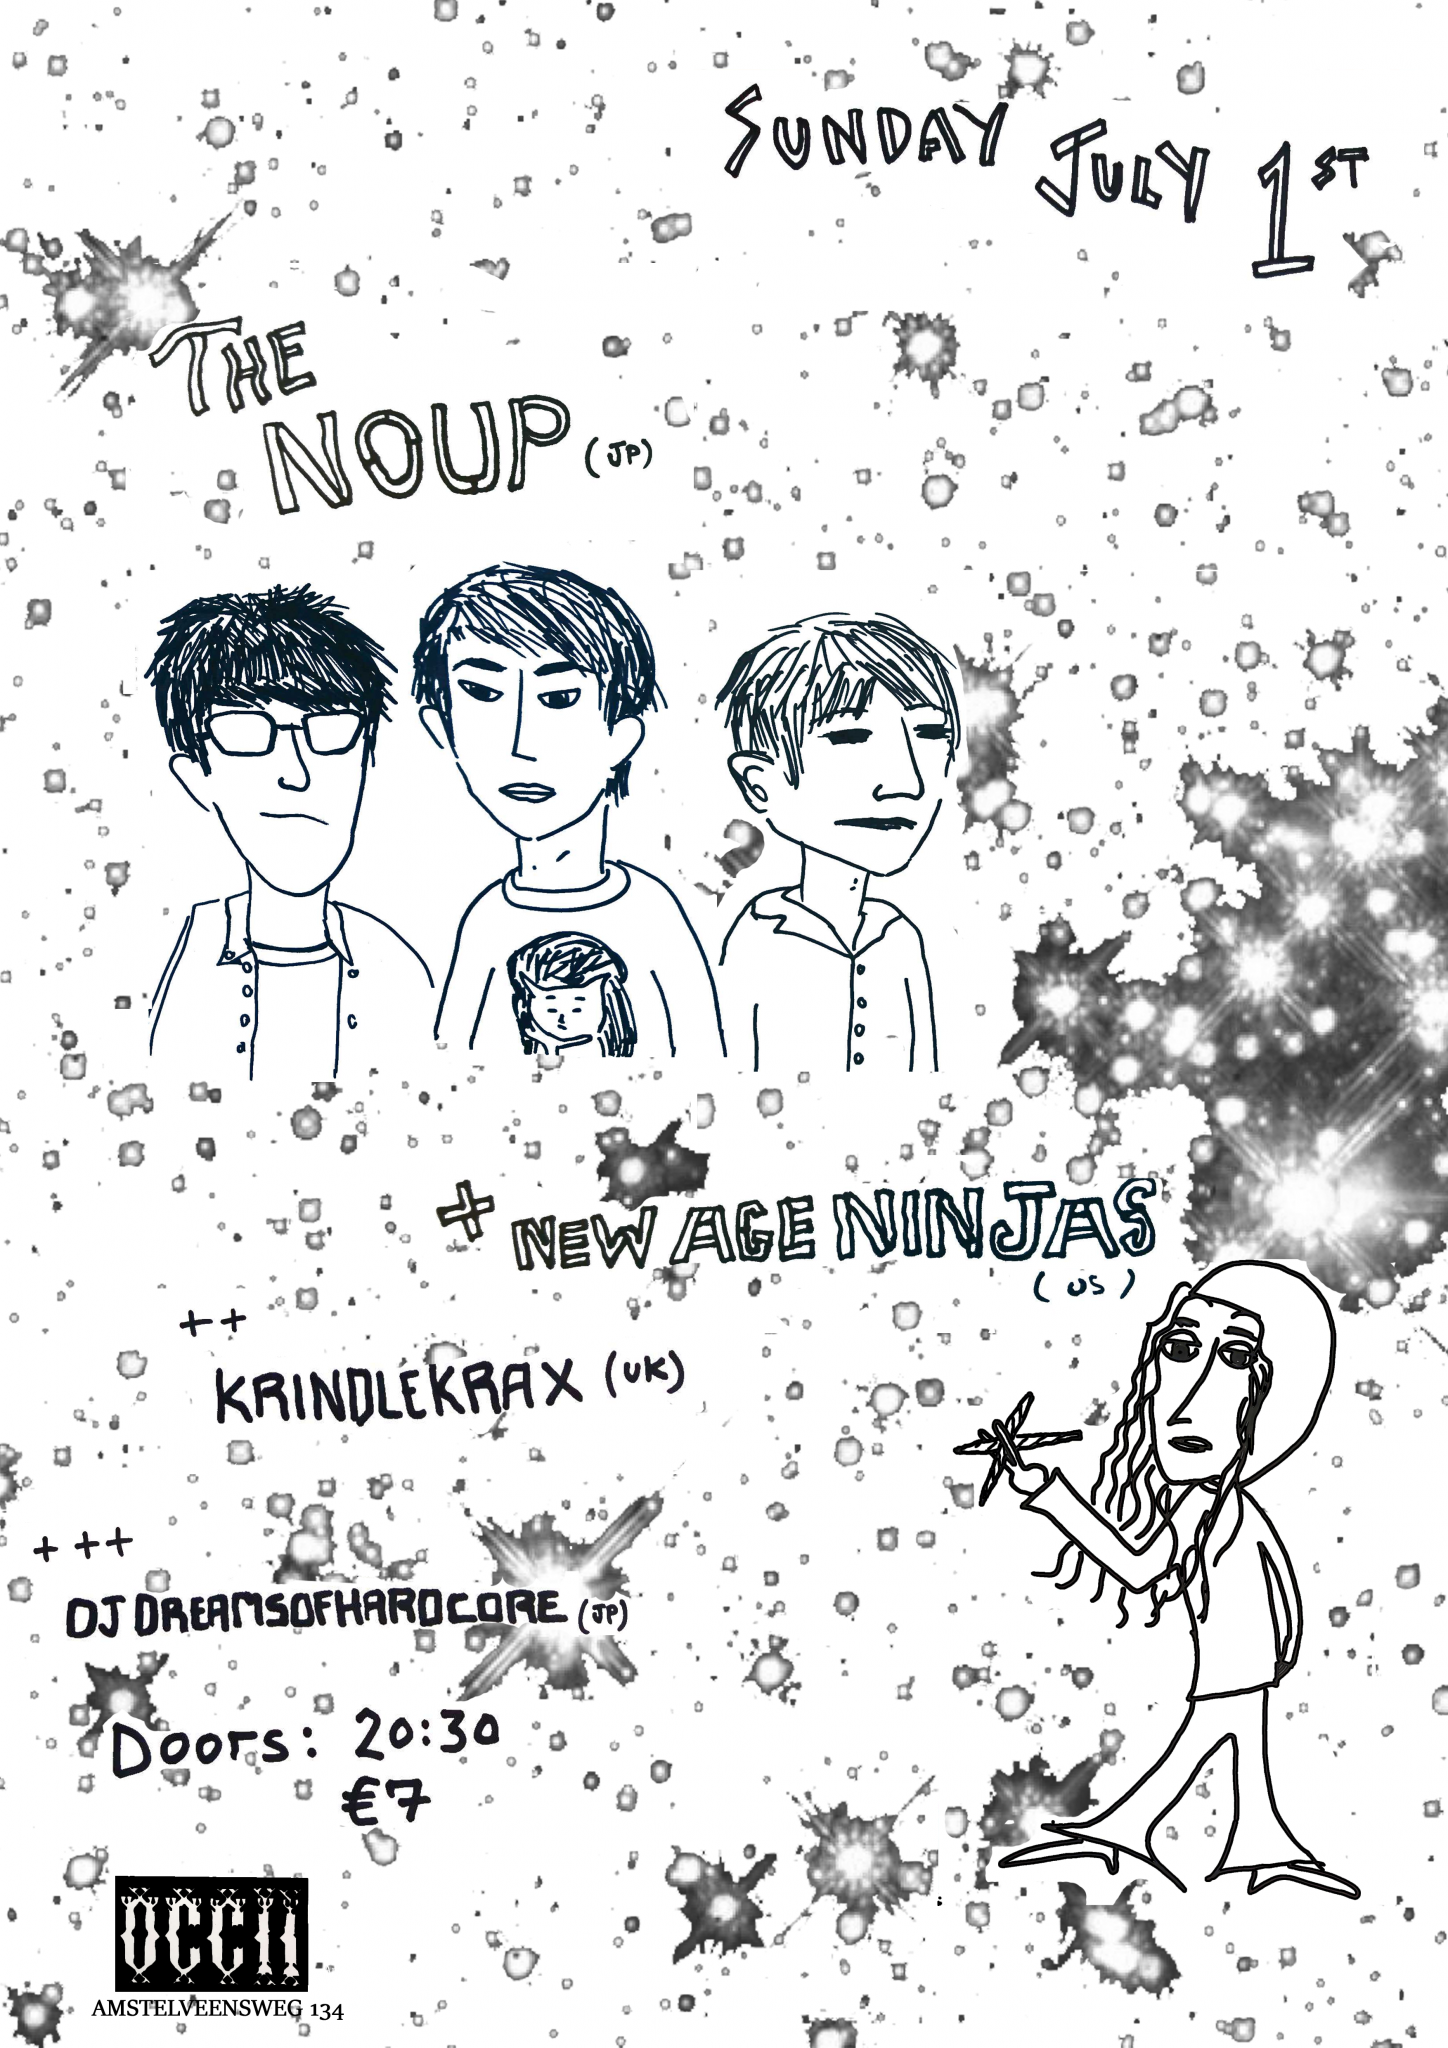 THE NOUP (JP) + NEW AGE NINJAS (US) + KRINDLEKRAX (UK) + DJ DreamsOfHardcore